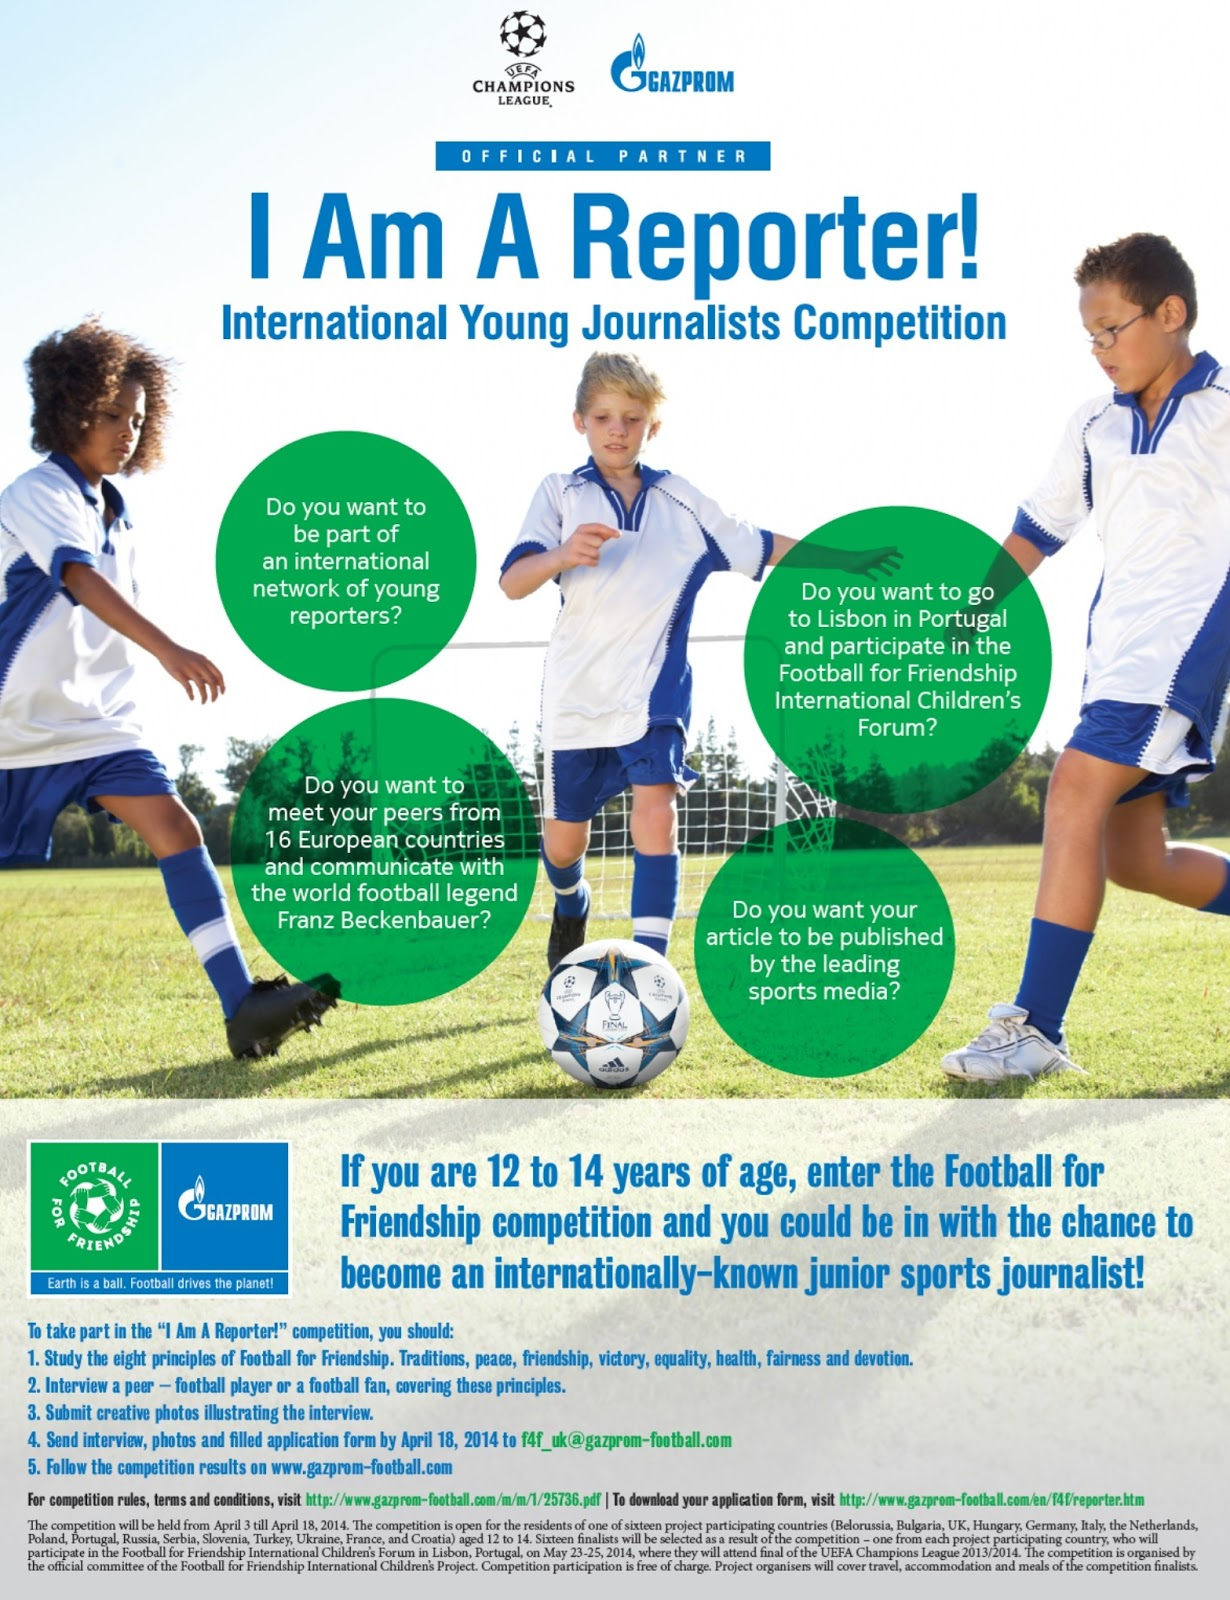 Football for Friendship Reporter Competition